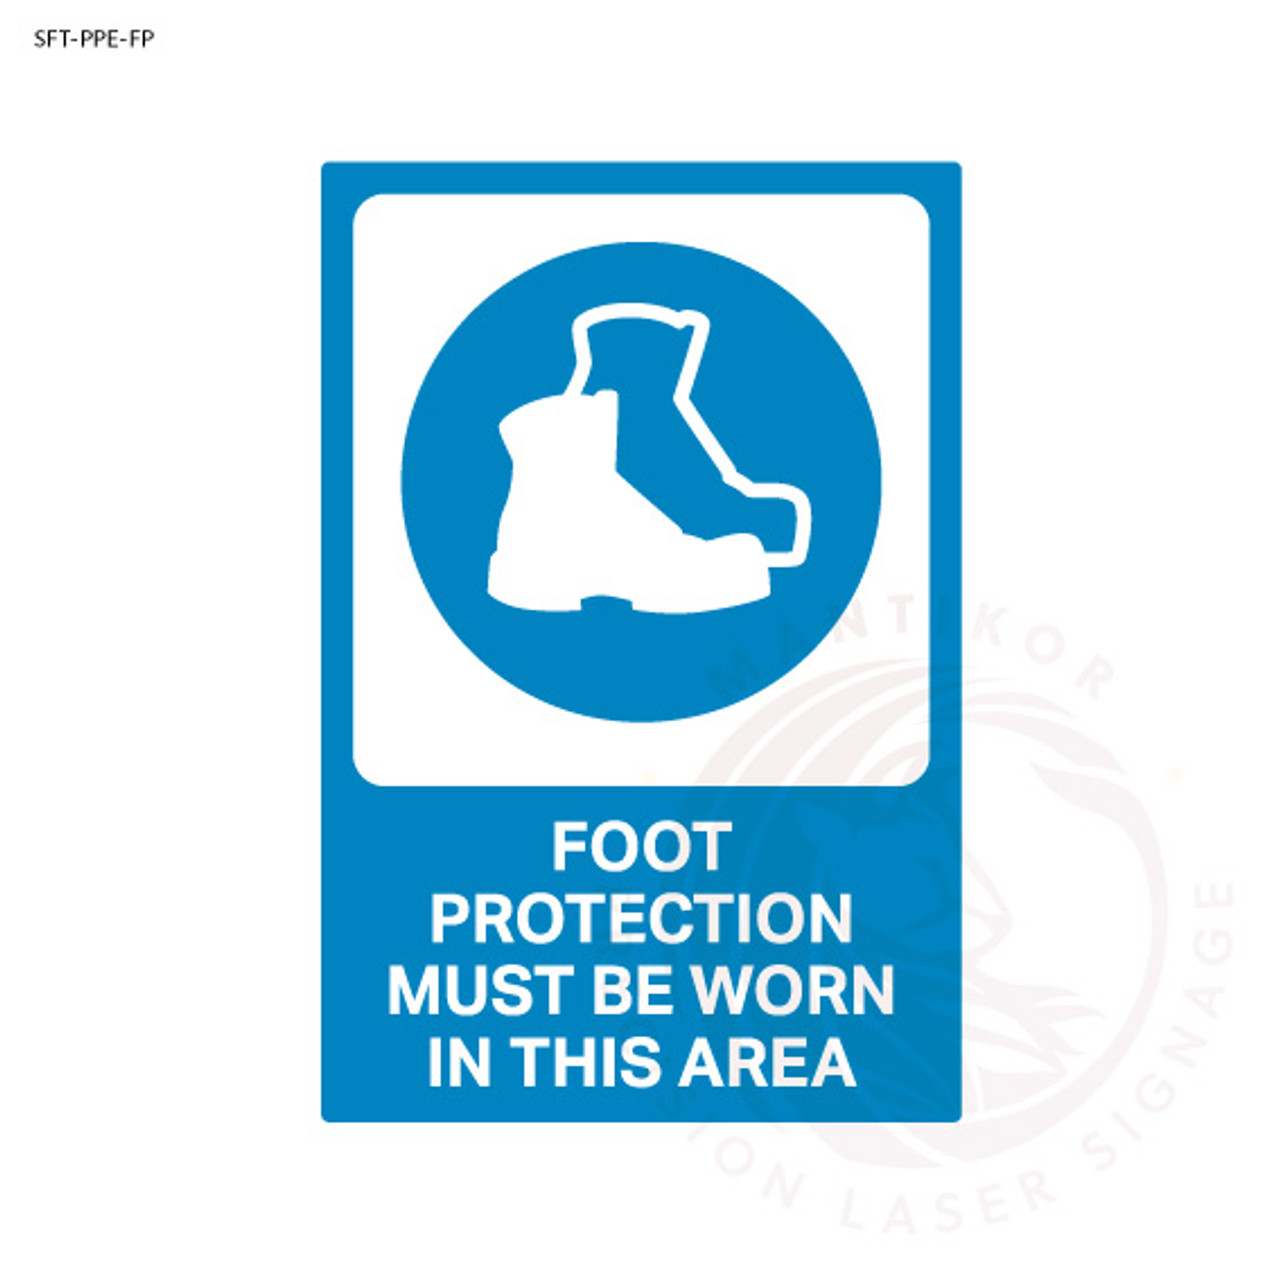 PPE Safety Signage - Foot protection must be worn in this area